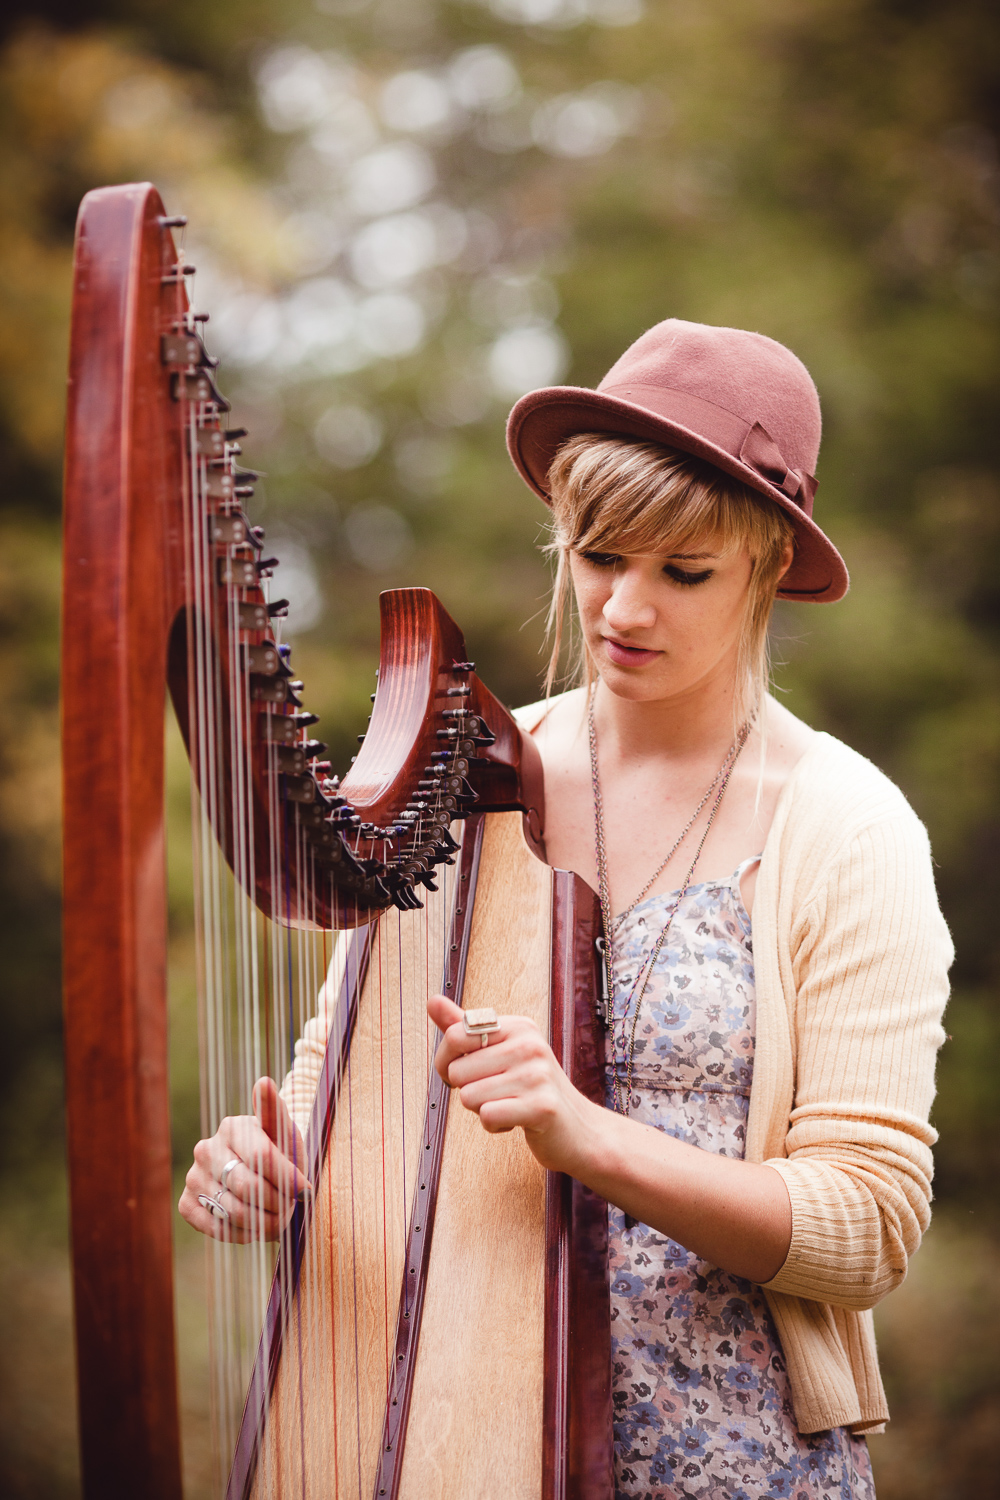 Central New Jersey Photographer Styled Photo Session with Harpists.jpg